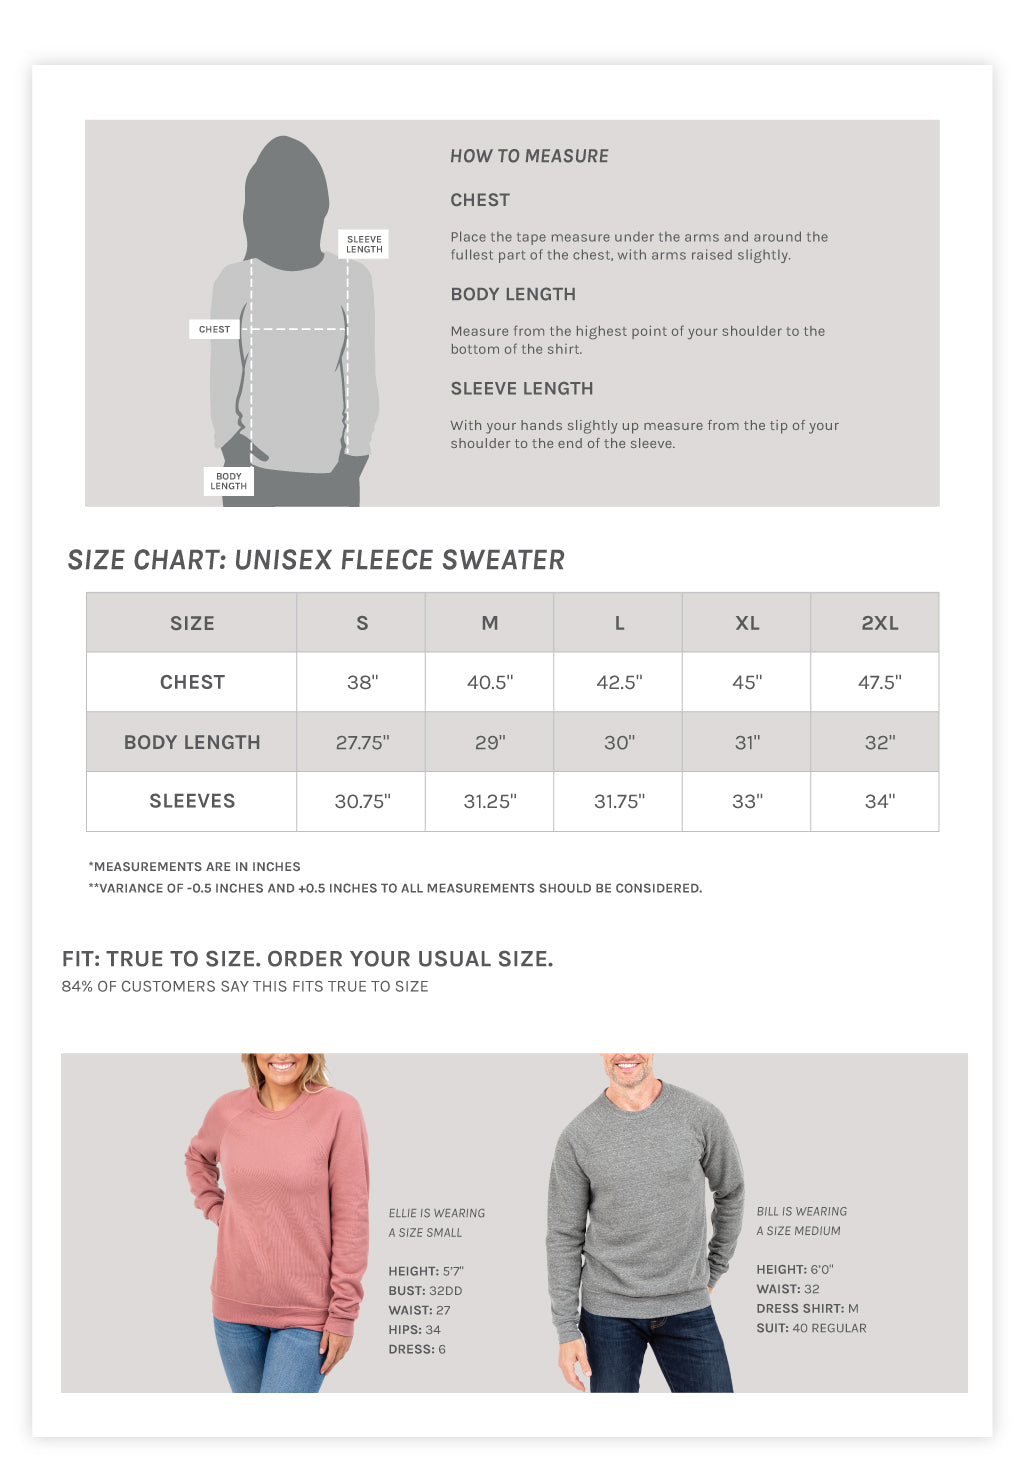 Unisex Fleece Sweater Size Chart